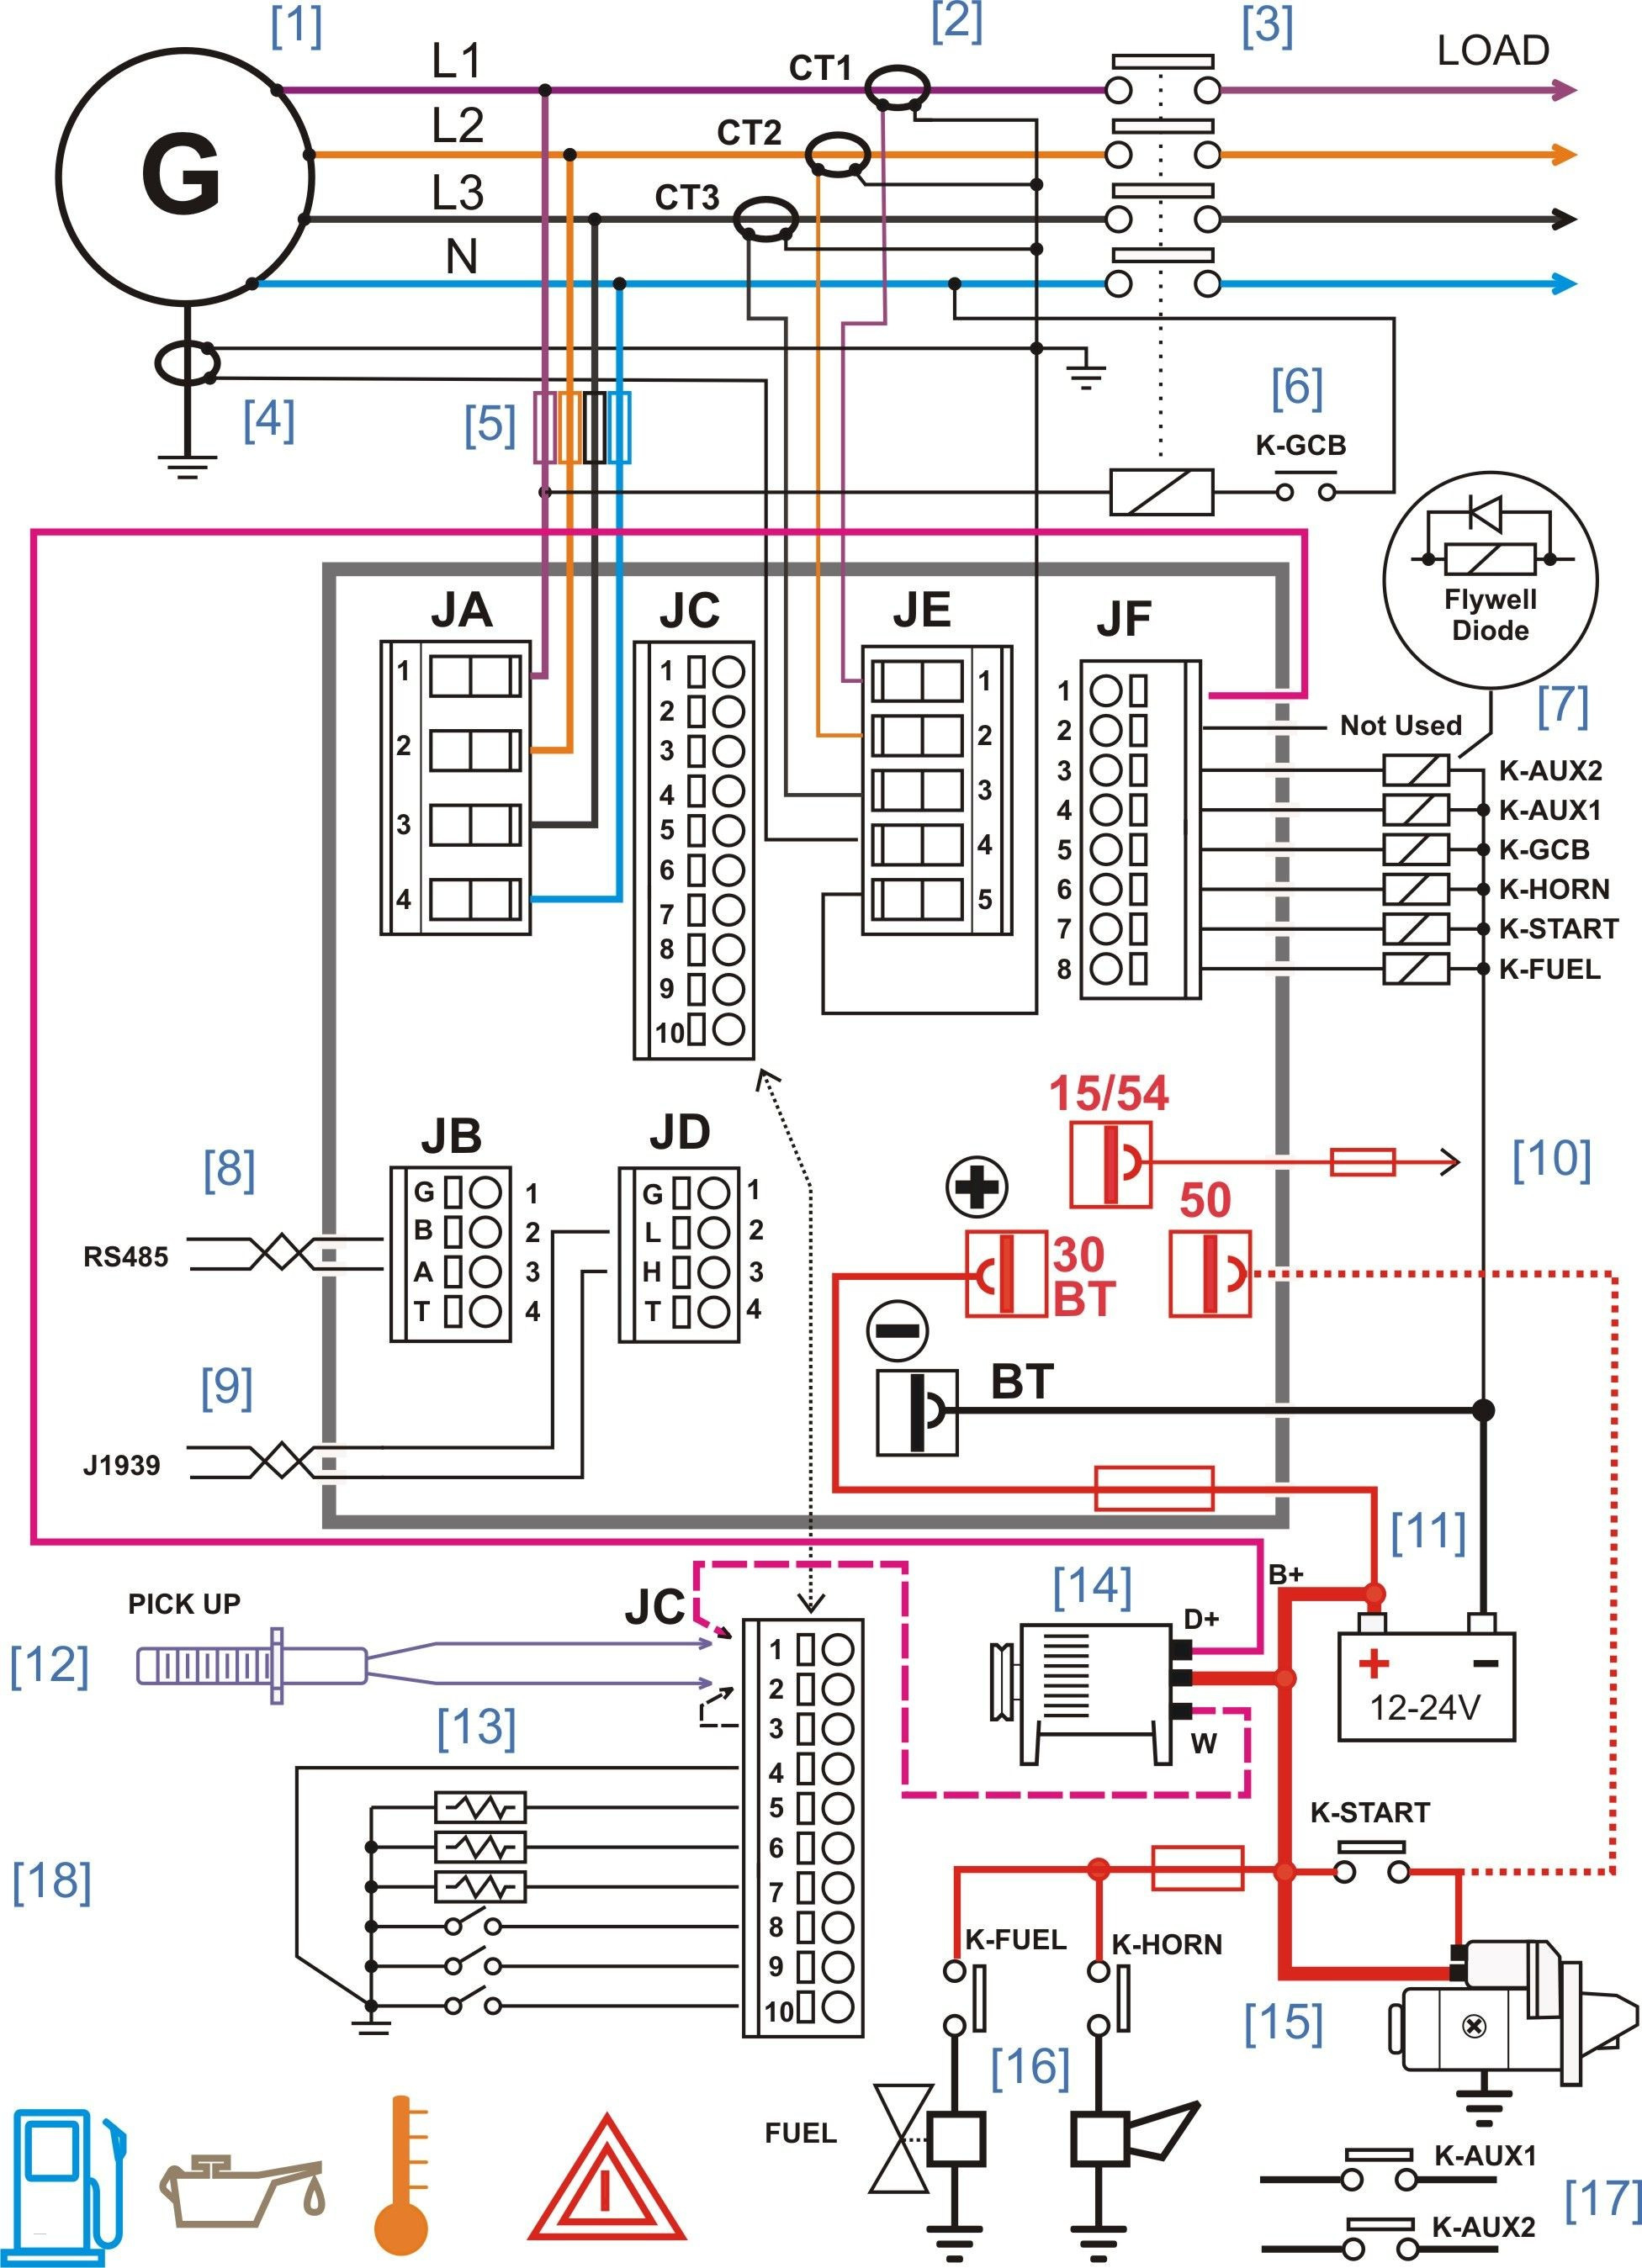 Mazda 3 wiring diagram horn wiring diagram electricity basics 101 mazda 3 horn wiring diagram sample wiring diagram sample rh faceitsalon com radio wiring harness diagram 2005 mazda 3 horn wiring diagram asfbconference2016 Image collections